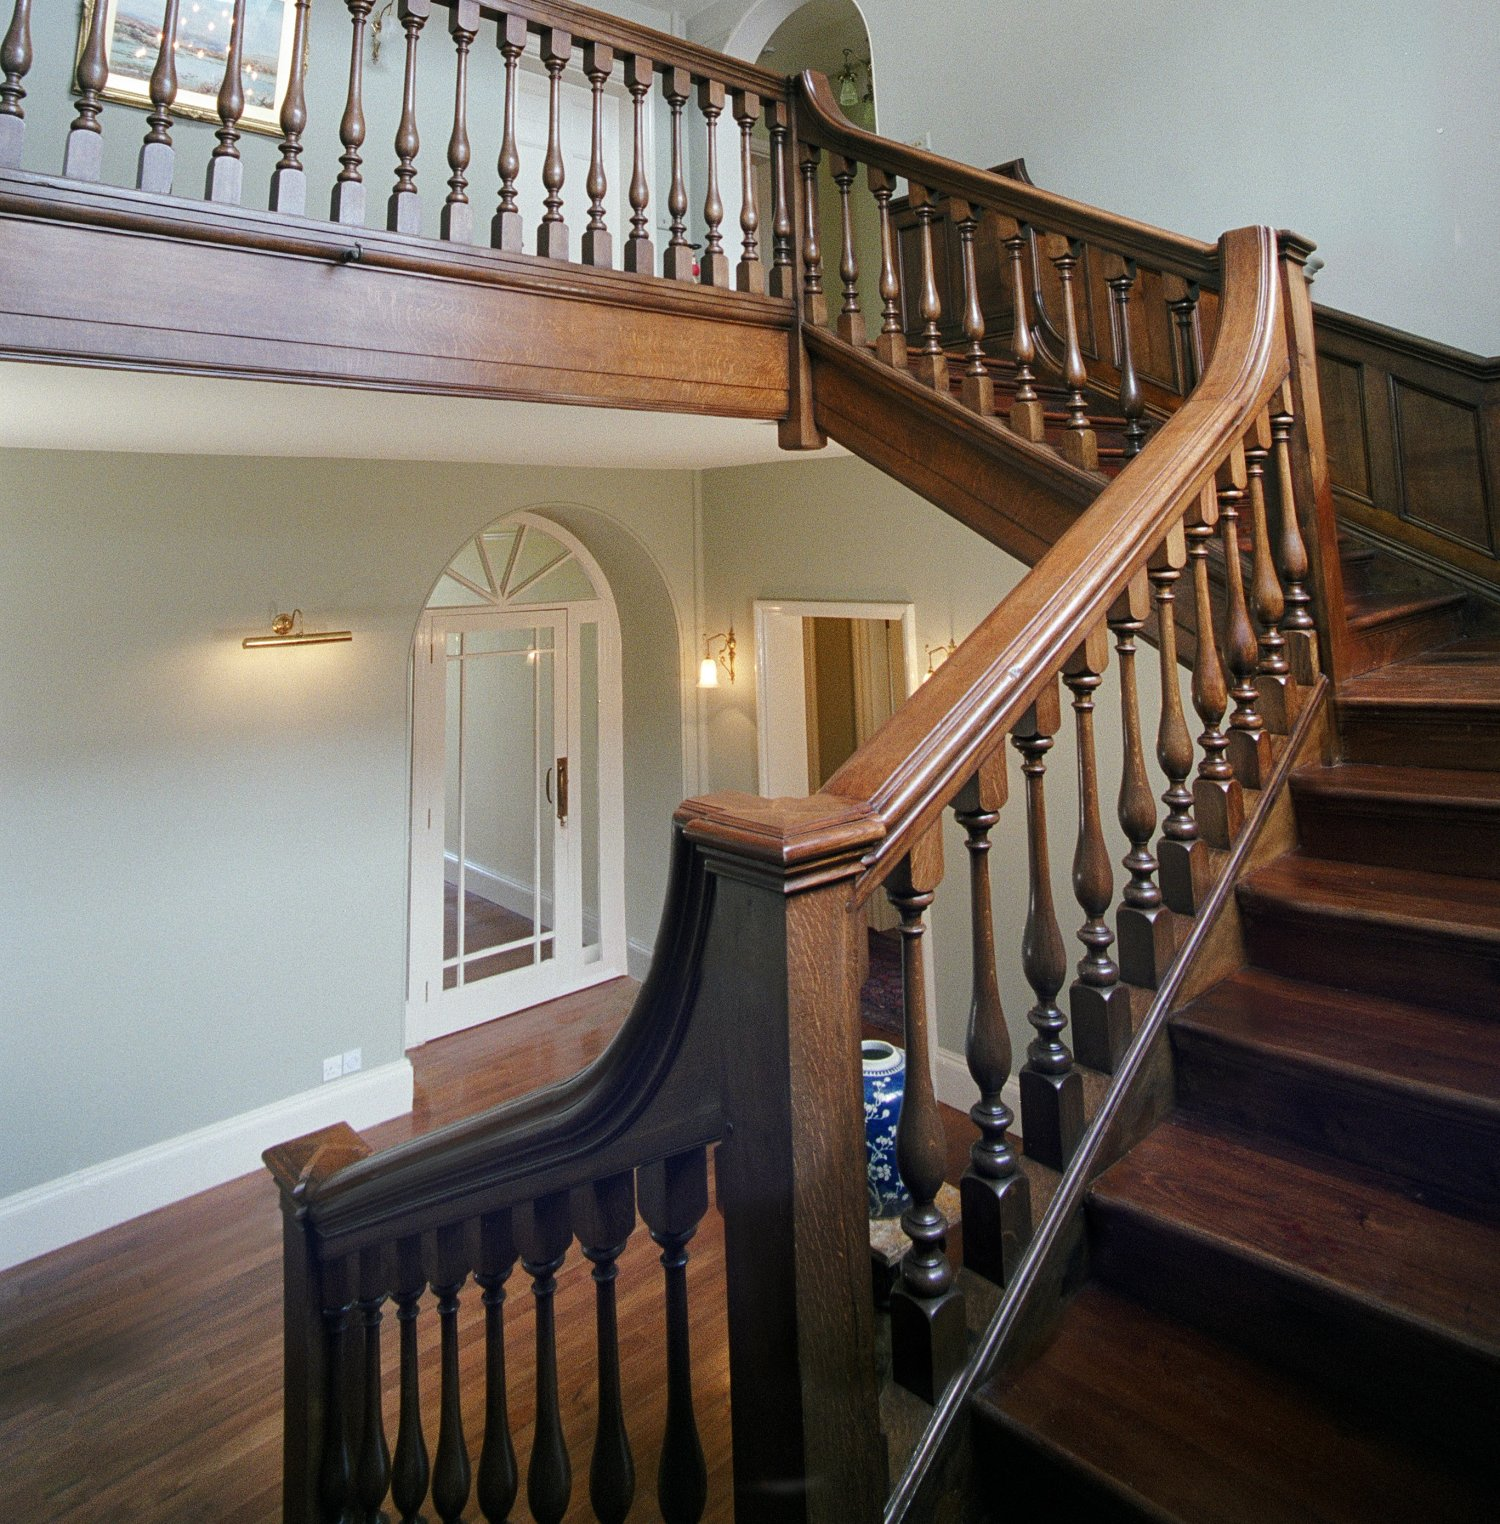 The oak staircase, restored after fire damage